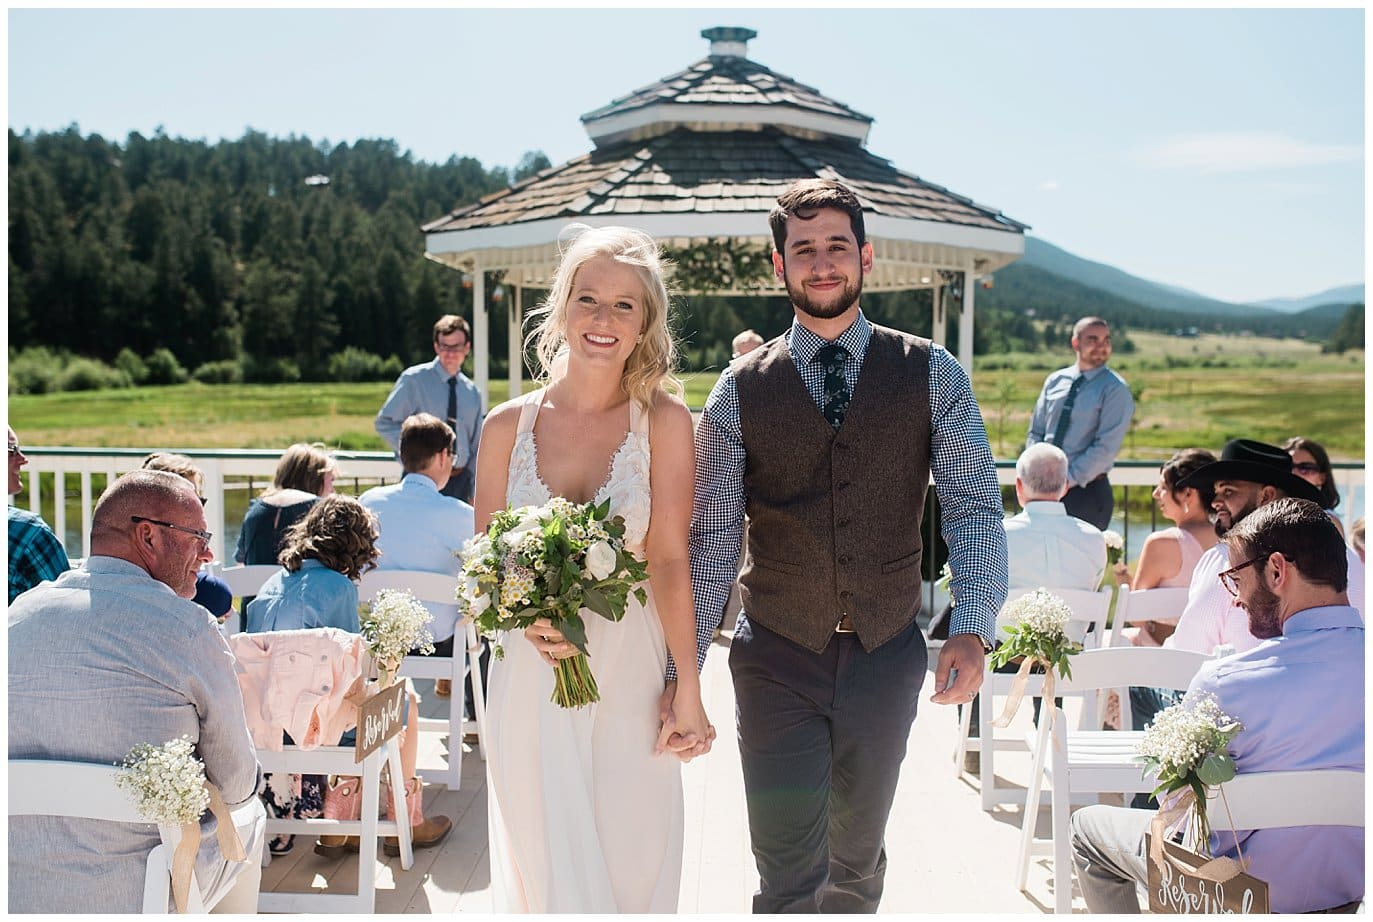 bride and groom walk back down aisle after wedding vows at Deer Creek Valley Ranch wedding by Conifer Wedding Photographer Jennie Crate Photographer